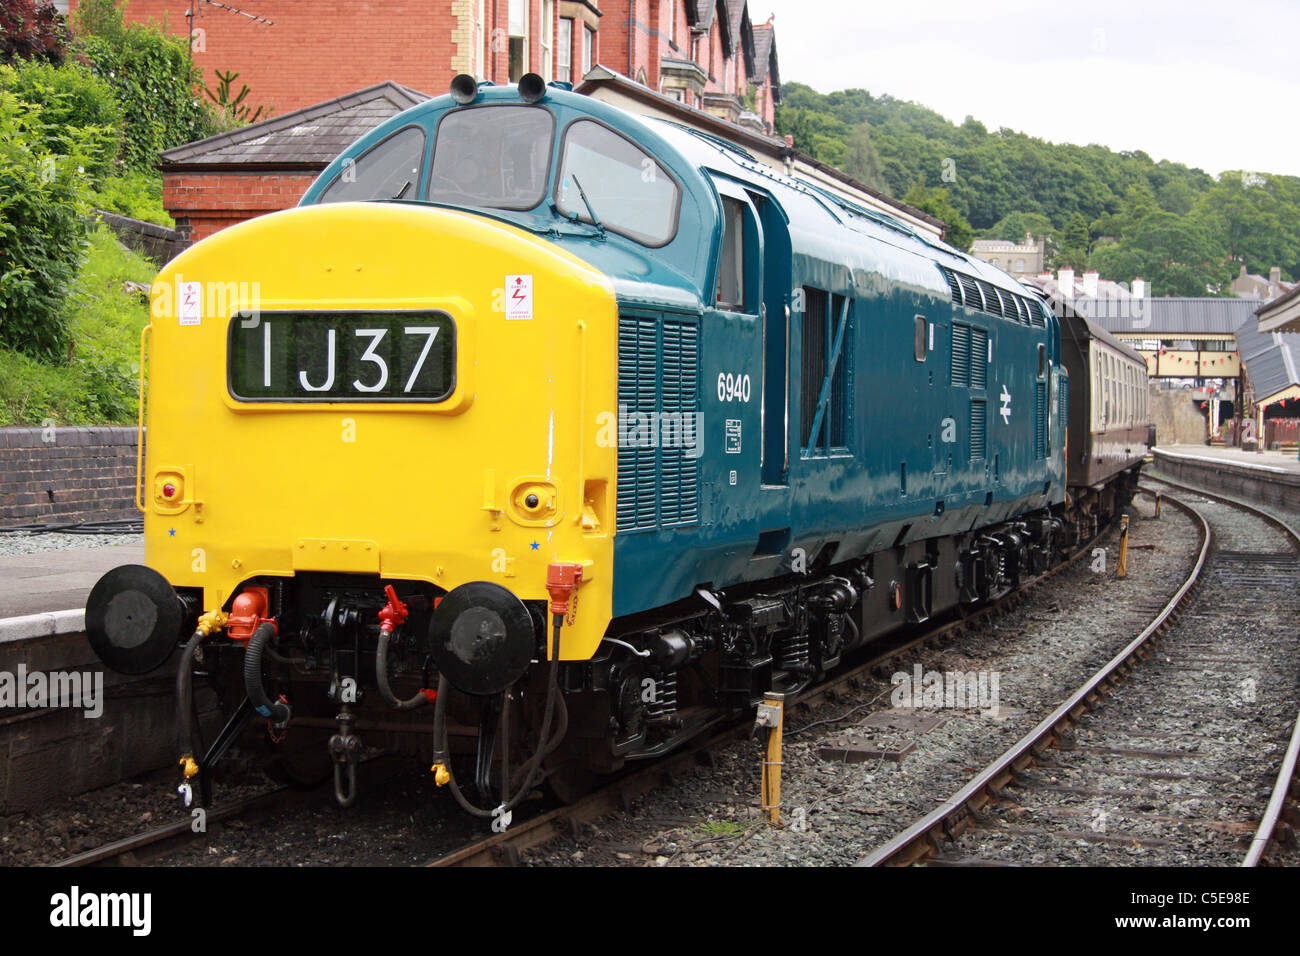 6940 (37240) at Llangollen during the recent '60's weekend' ...